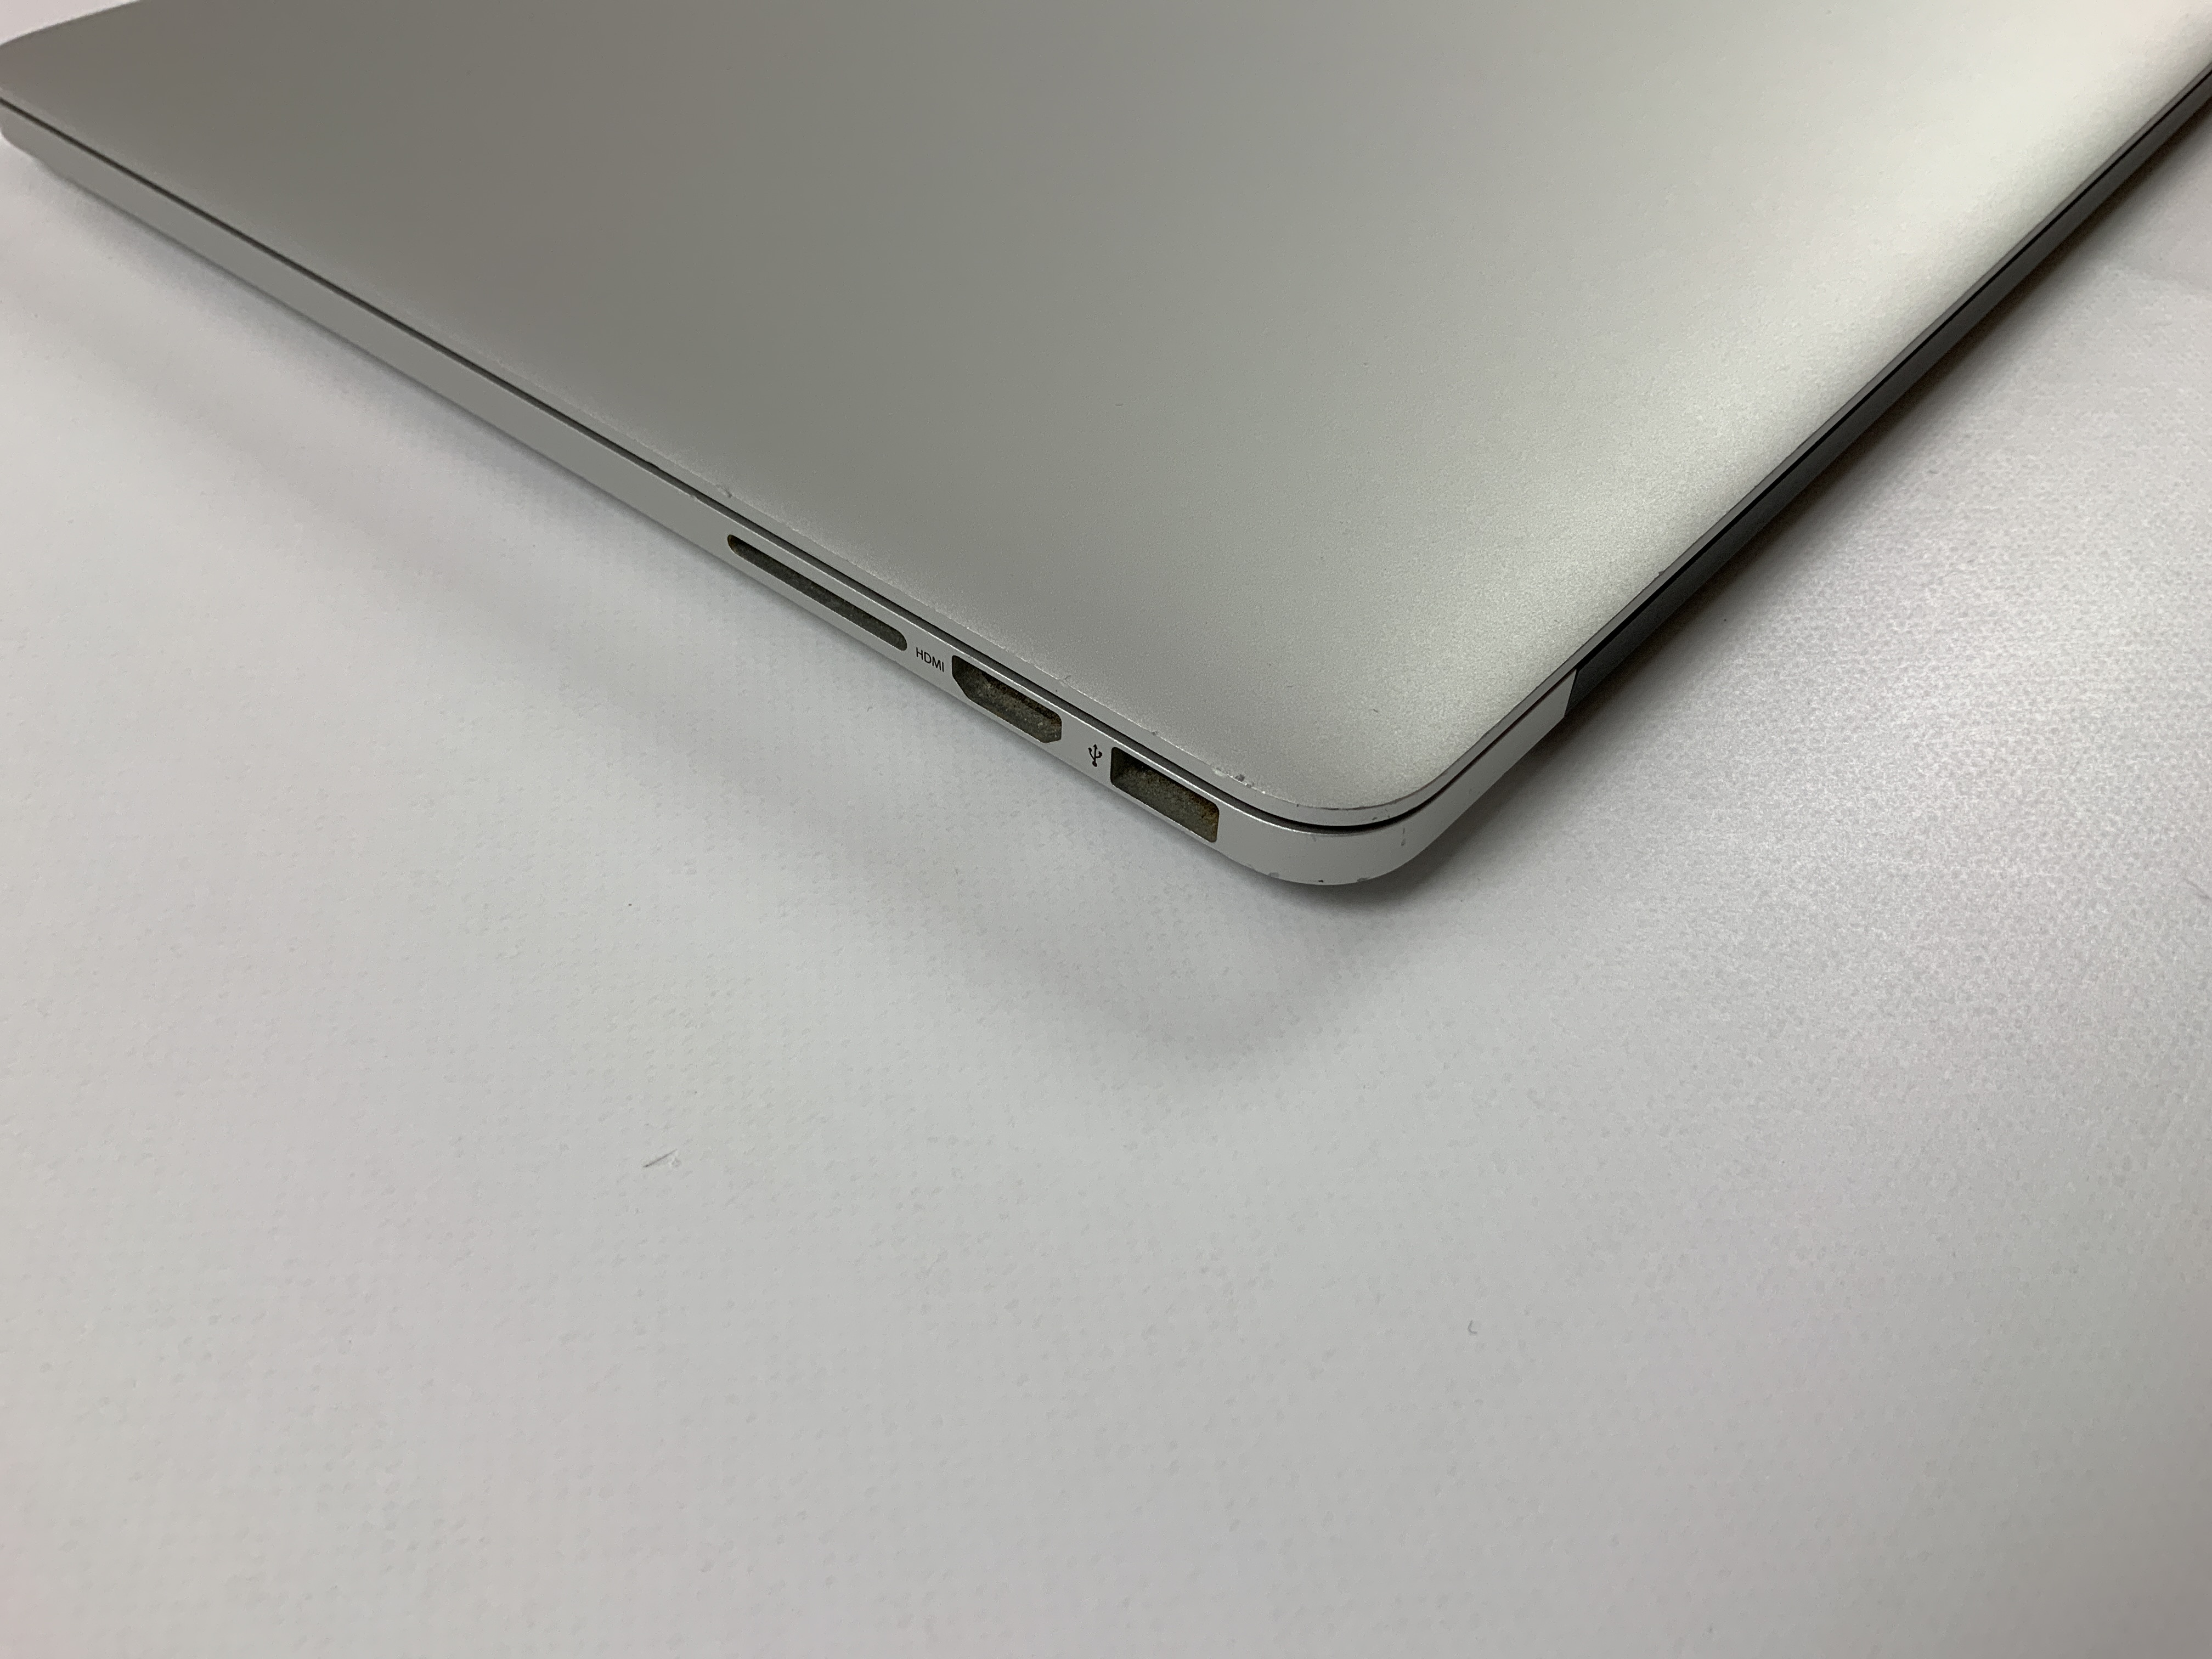 "MacBook Pro Retina 15"" Mid 2015 (Intel Quad-Core i7 2.2 GHz 16 GB RAM 256 GB SSD), Intel Quad-Core i7 2.2 GHz, 16 GB RAM, 256 GB SSD, bild 4"